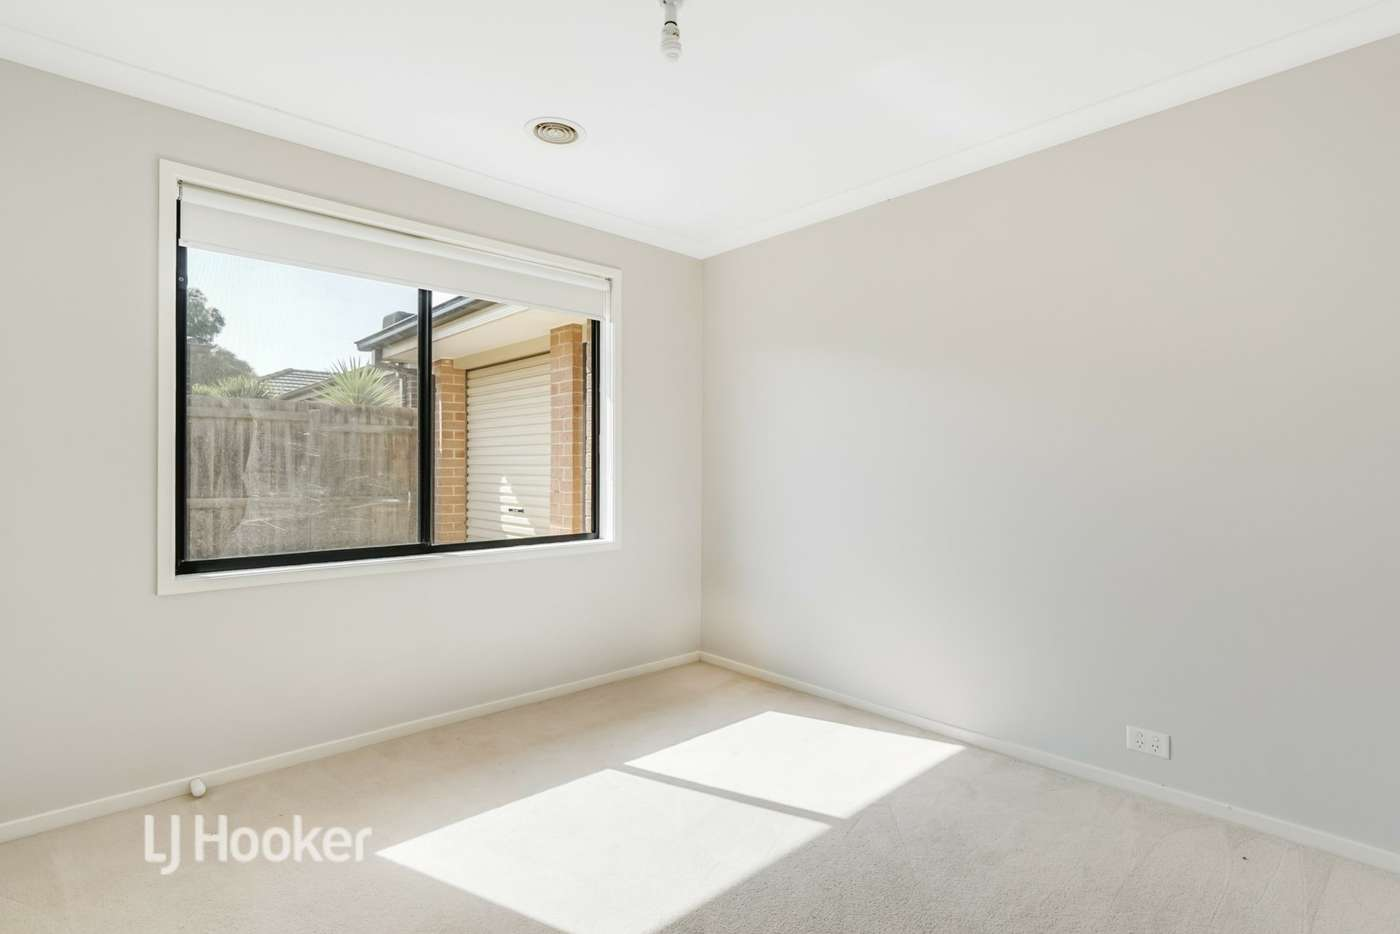 Sixth view of Homely house listing, 15 Kruger Street, Mernda VIC 3754